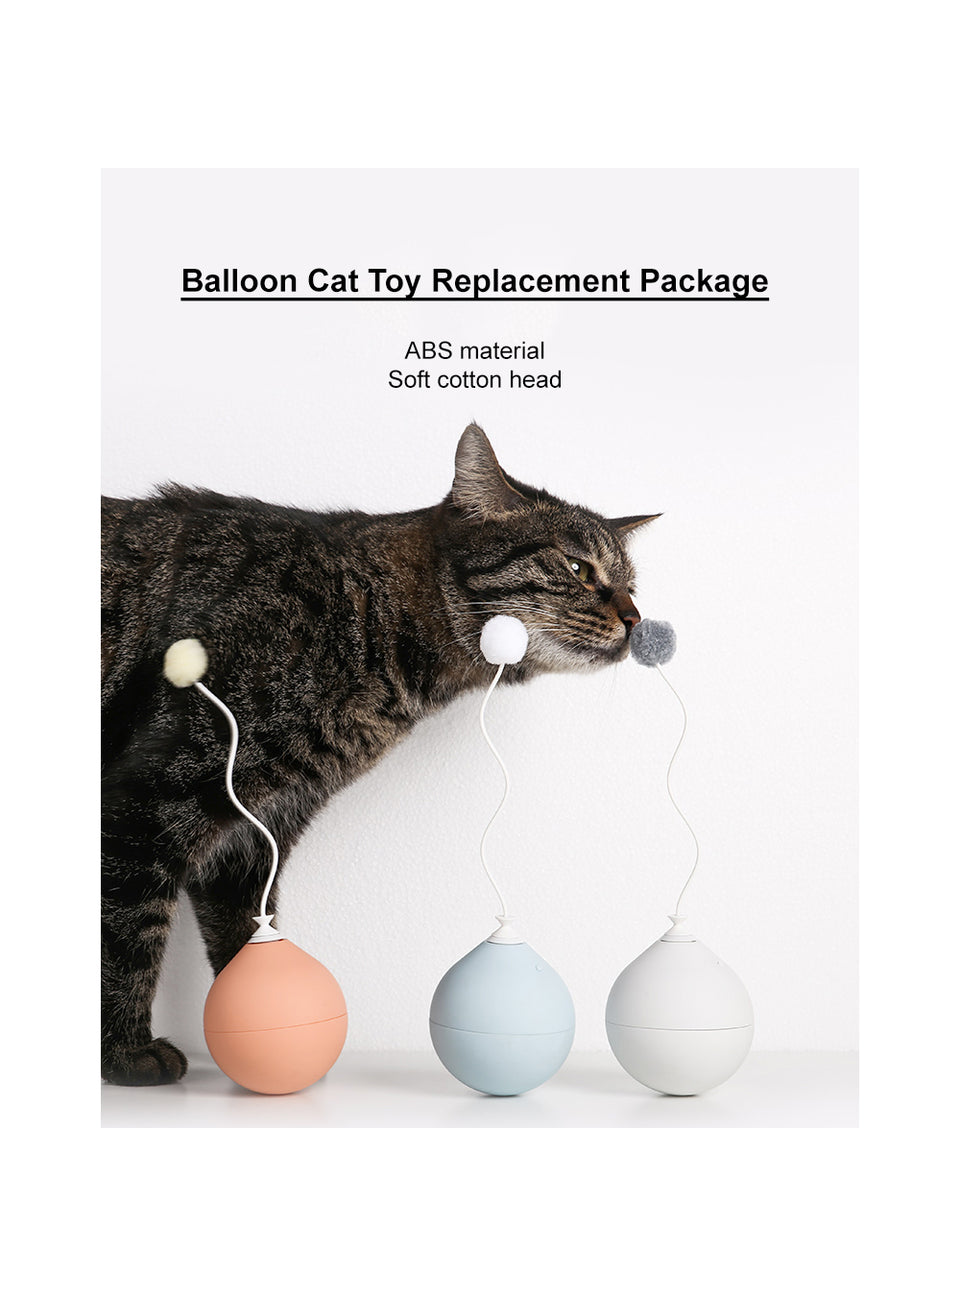 Balloon Cat Toy Accessory Replacement Package